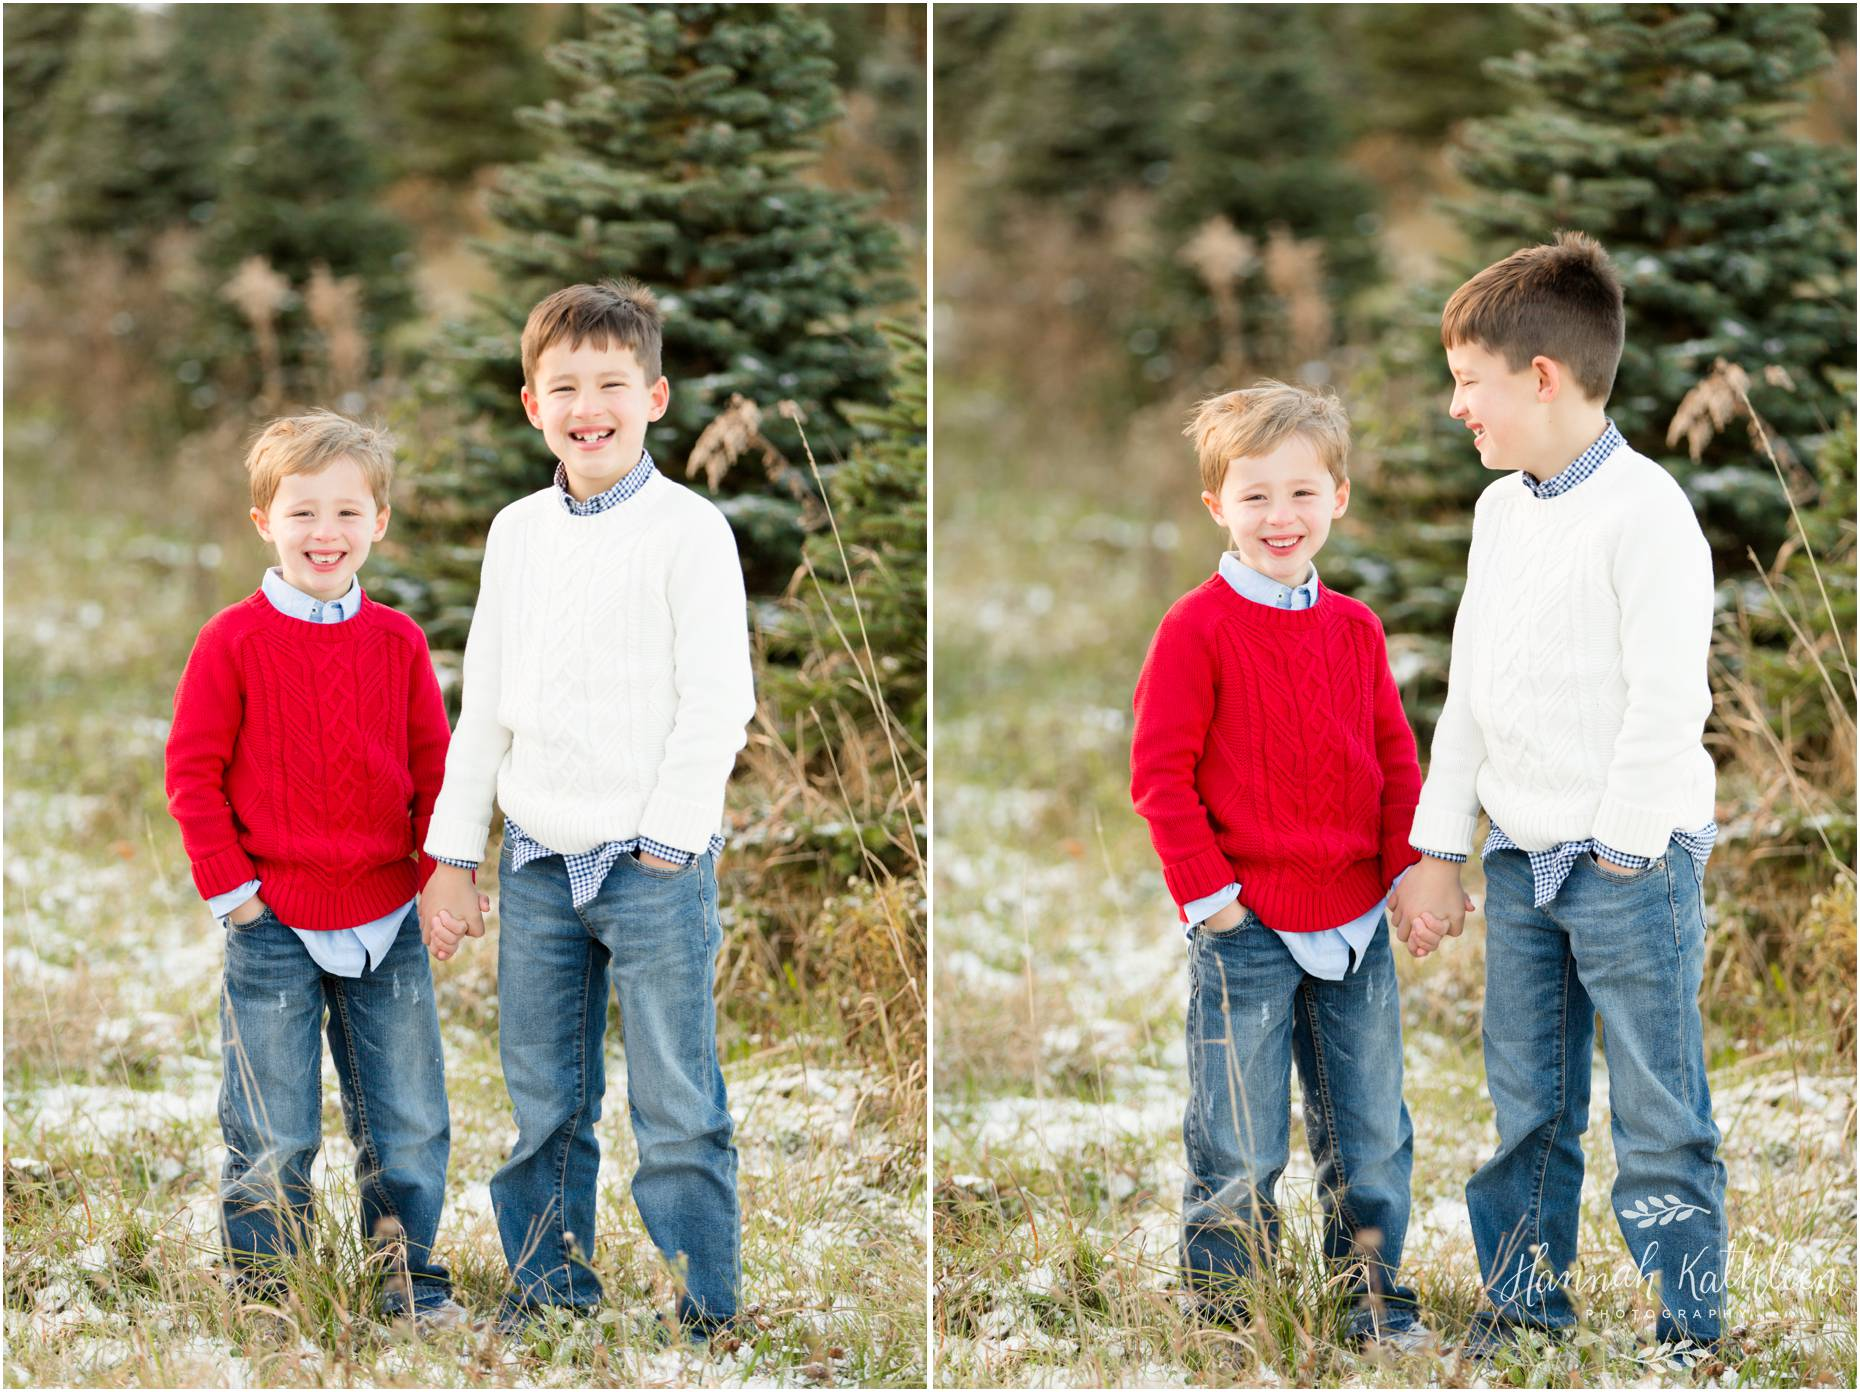 Christmas Tree Farm Mini Sessions.Christmas Tree Farm Mini Sessions Hannah Kathleen